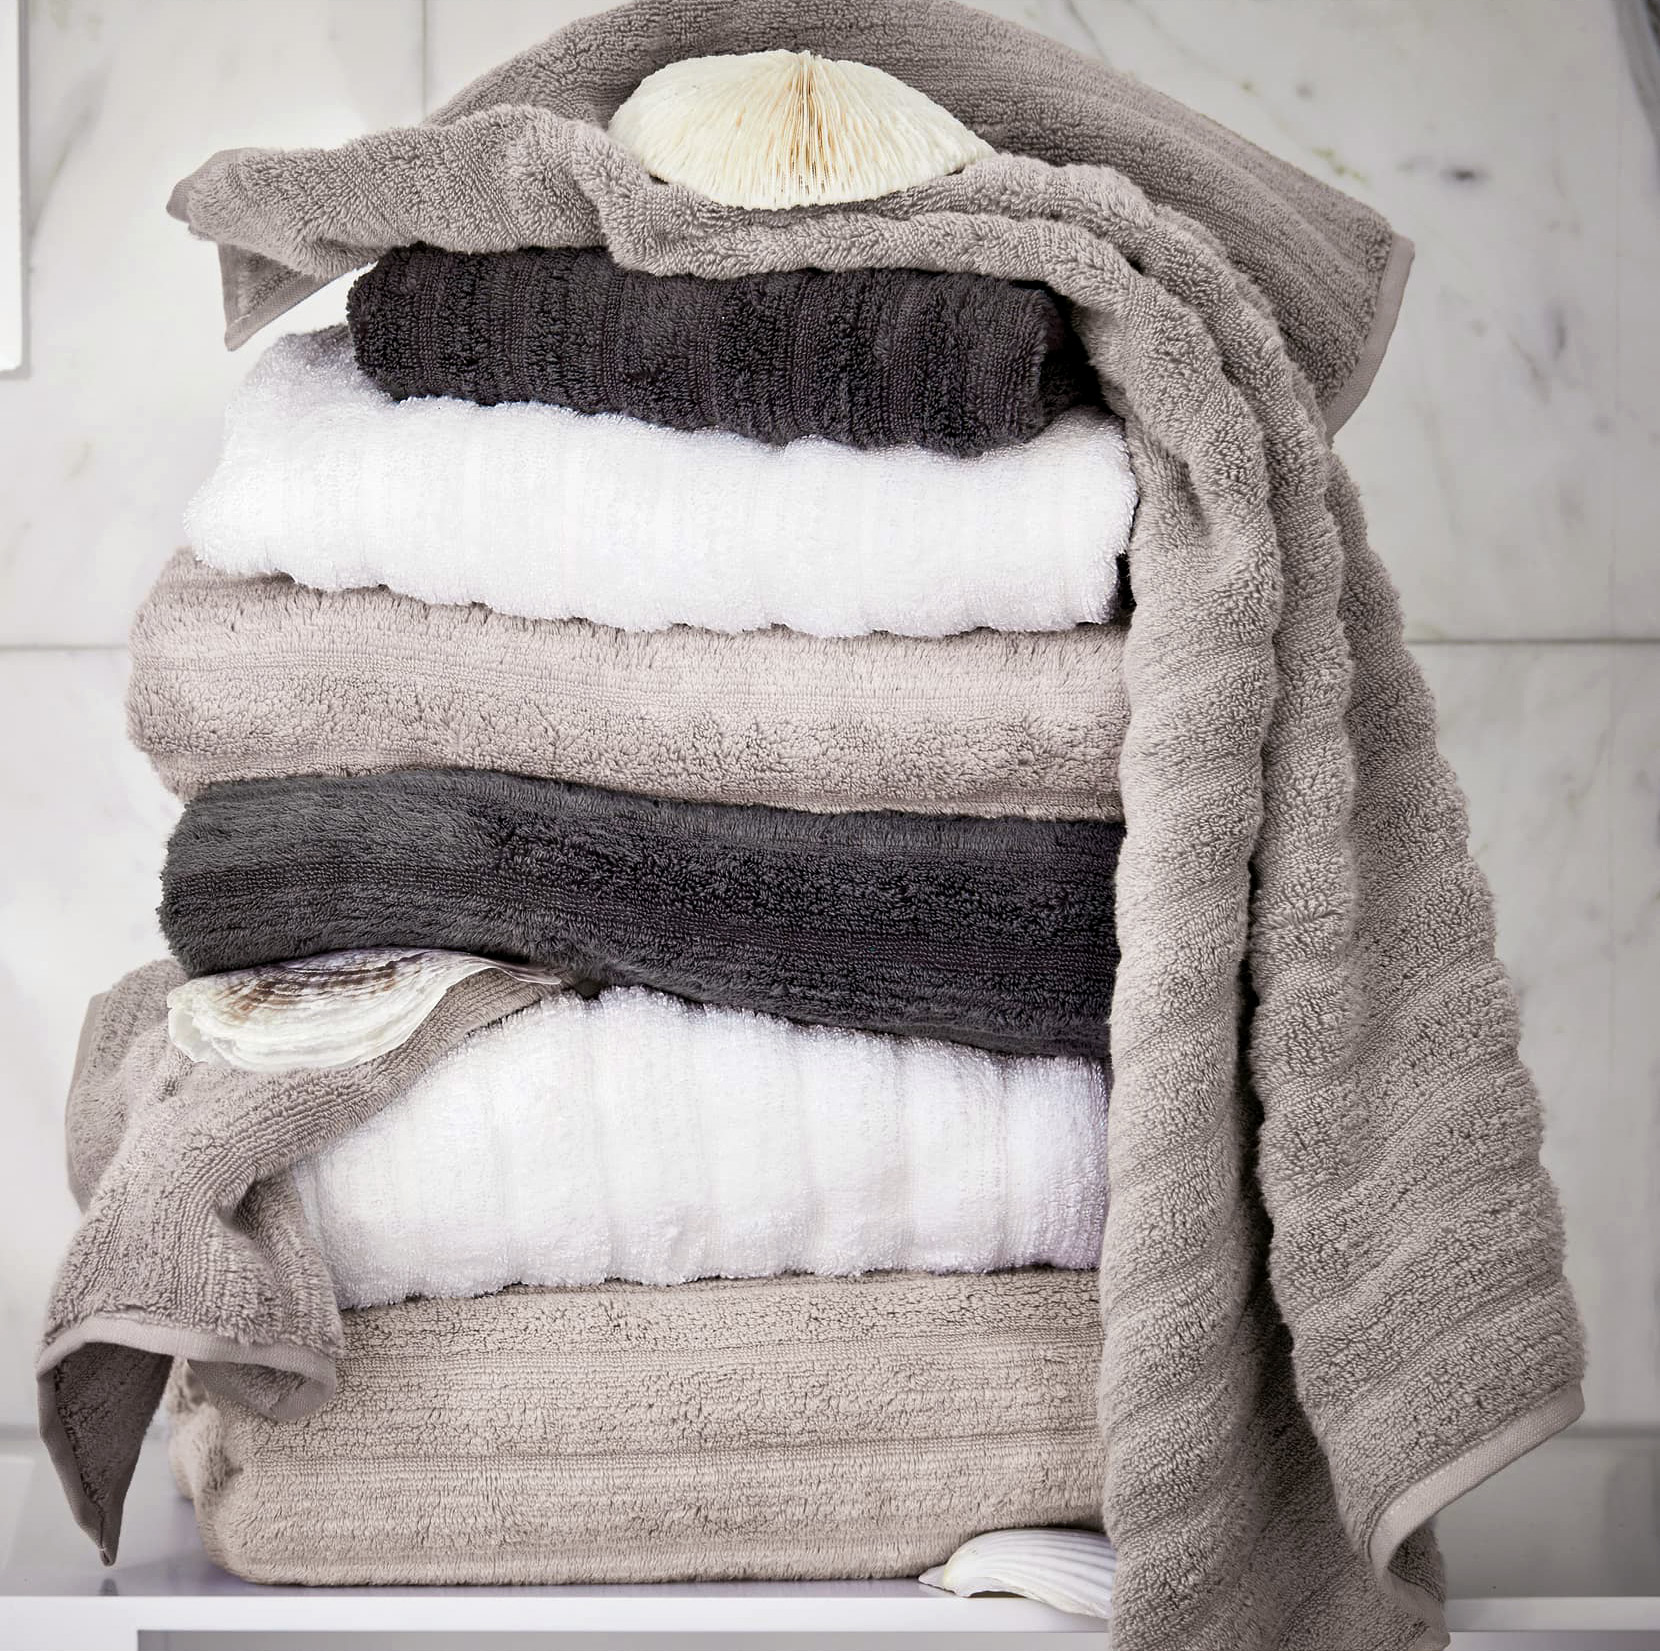 ribbed neutral towels